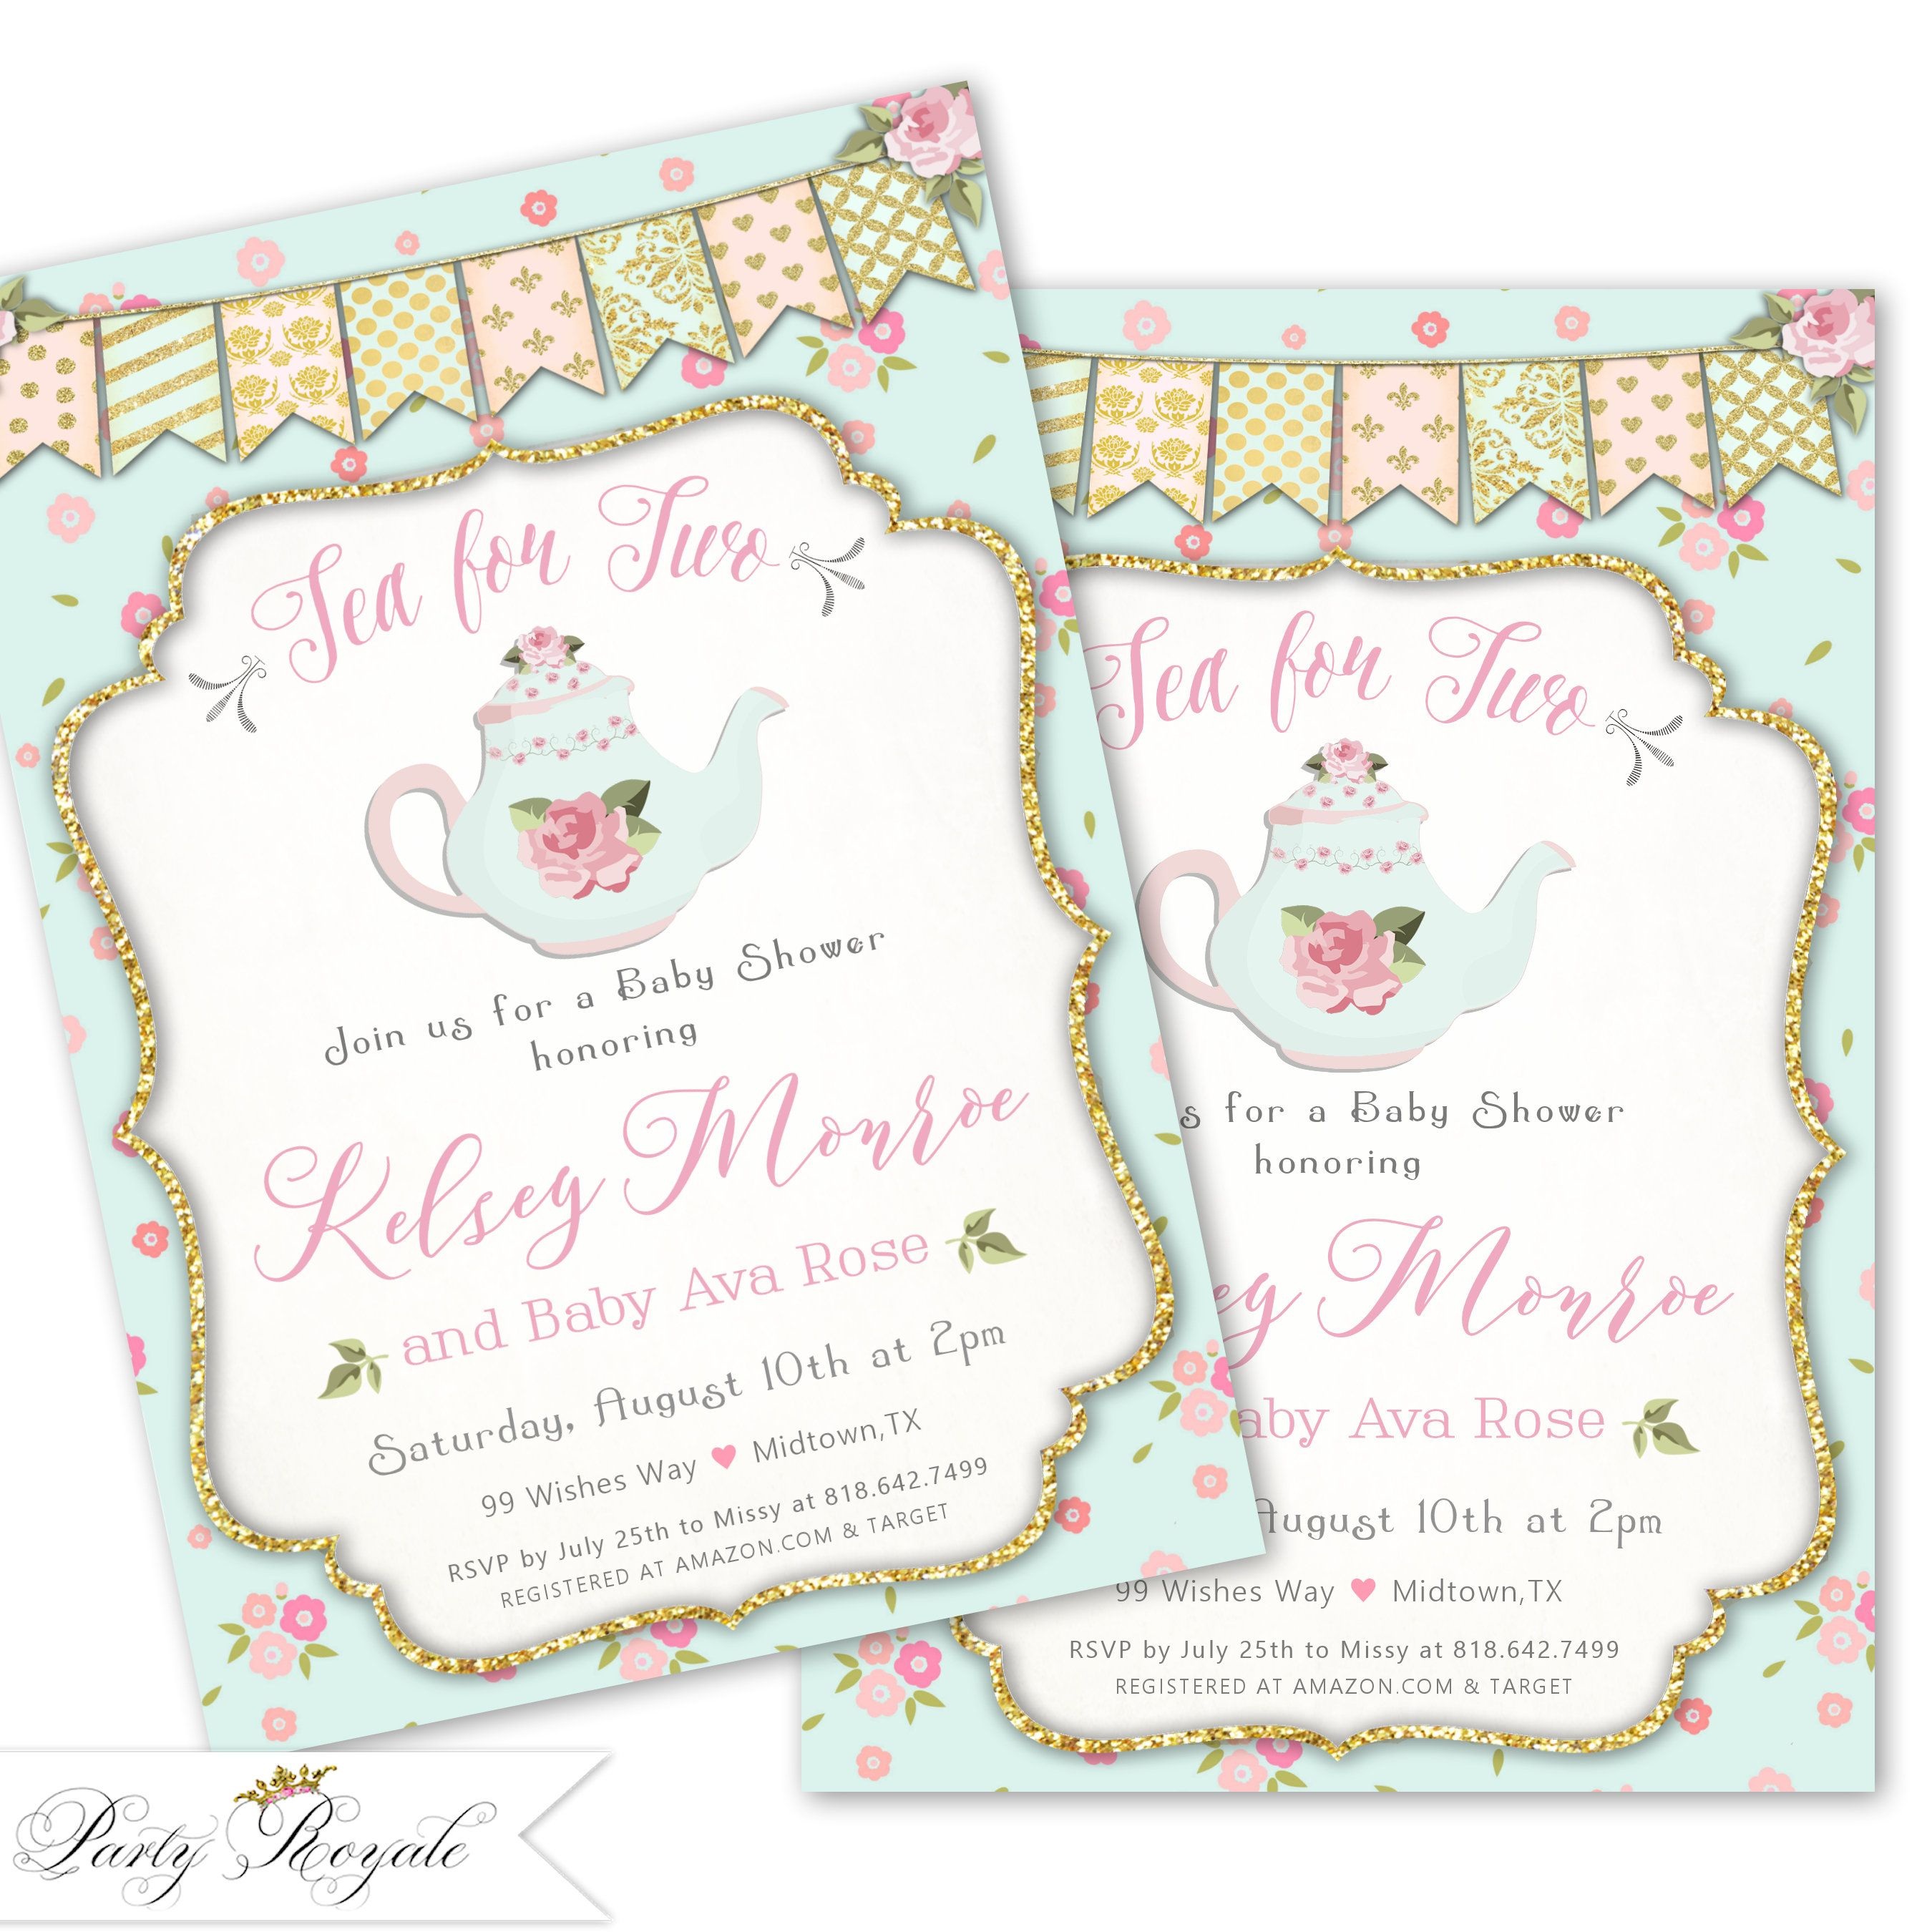 Tea for Two Baby Shower Invitation, Tea Party Baby Shower Invites ...